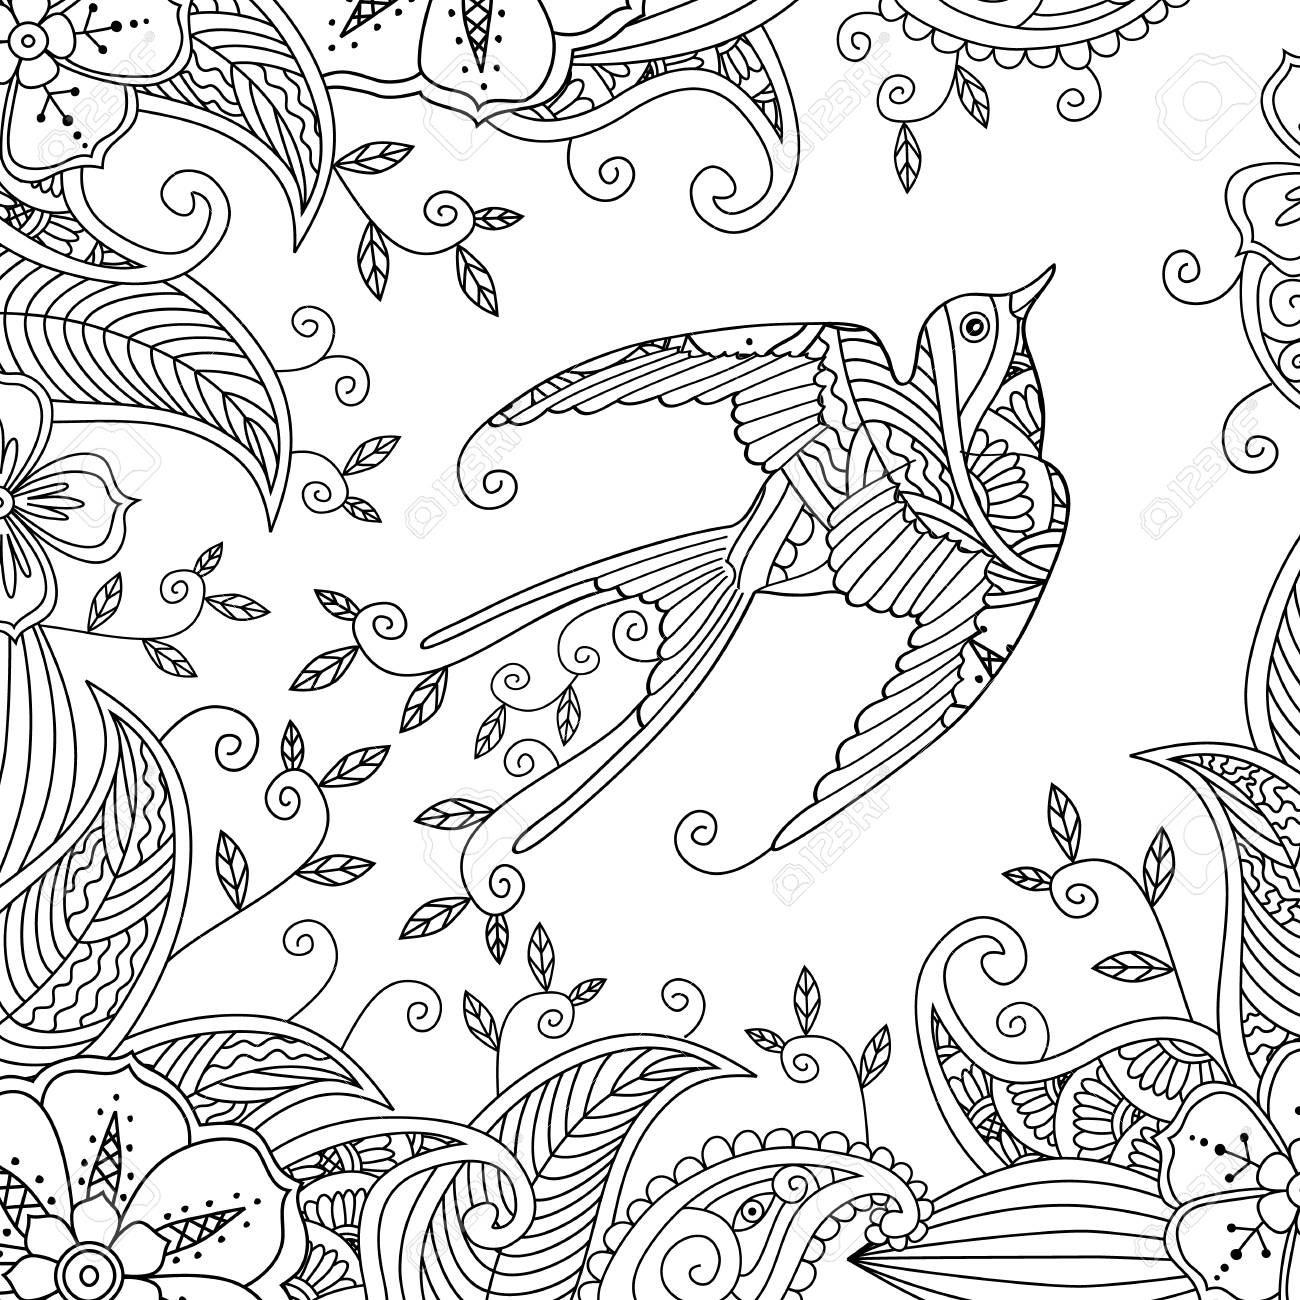 Coloring page with beautiful flying bird and floral background...